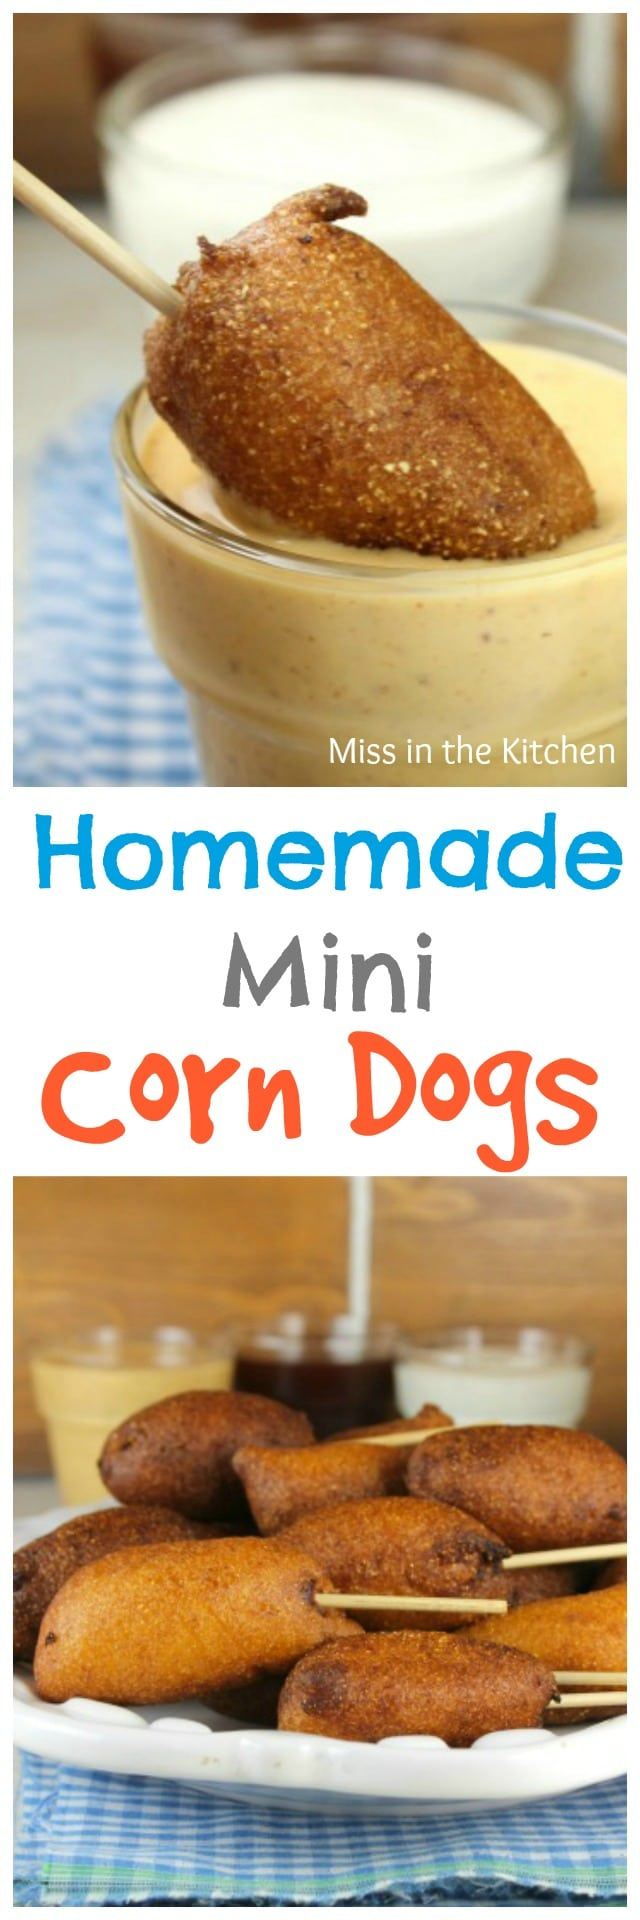 Homemade Mini Corn Dogs Recipe perfect as an appetizer or great for lunch! From MissintheKitchen.com